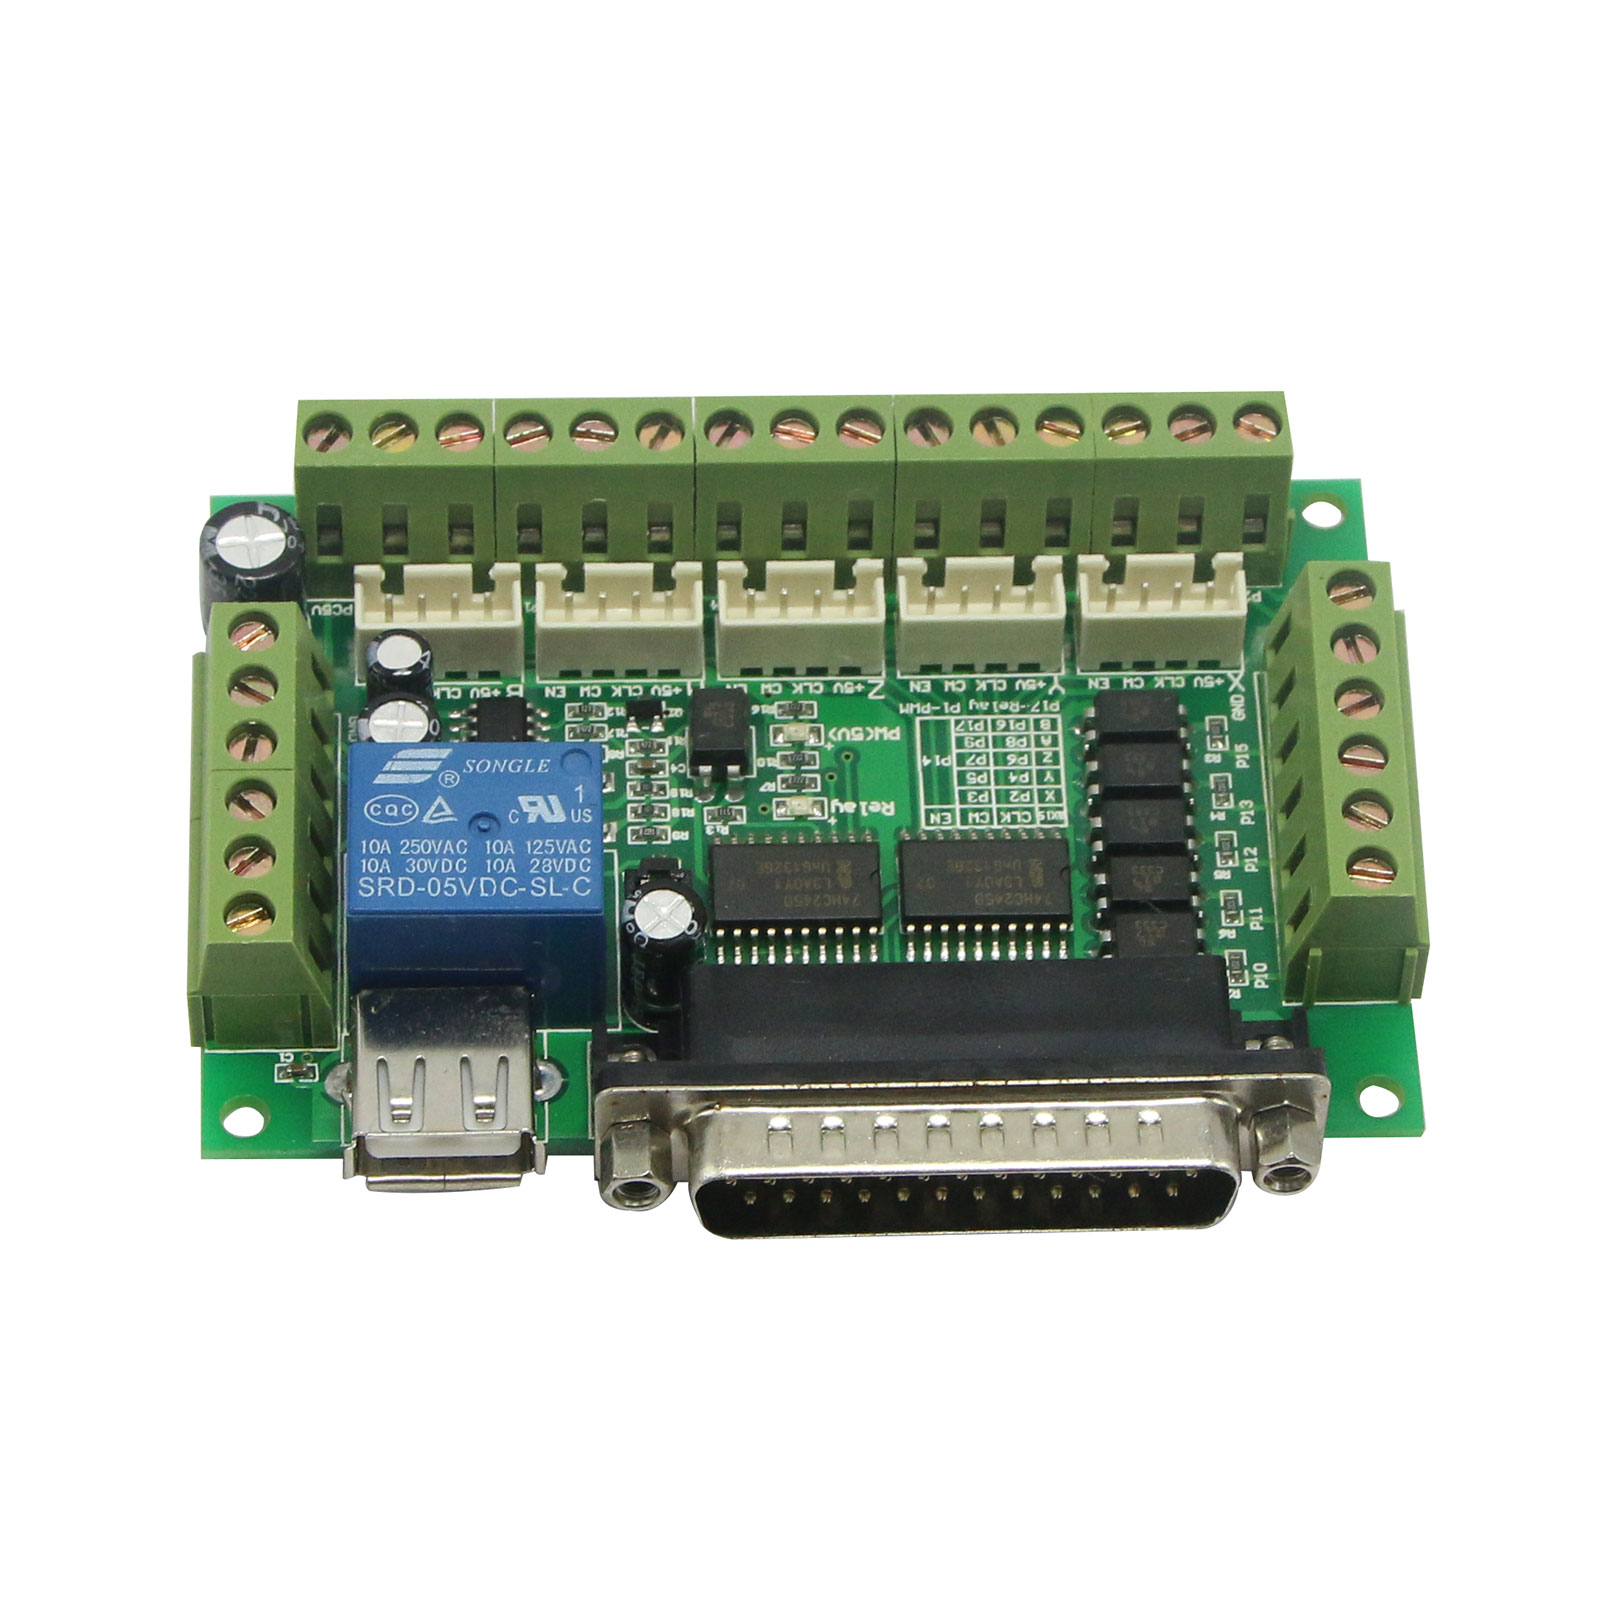 Upgraded 5 Axis CNC Breakout Board For Stepper Driver Controller mach3 Engraving Machine 4 axis cnc breakout board parallel stepper motor driver module lv8727